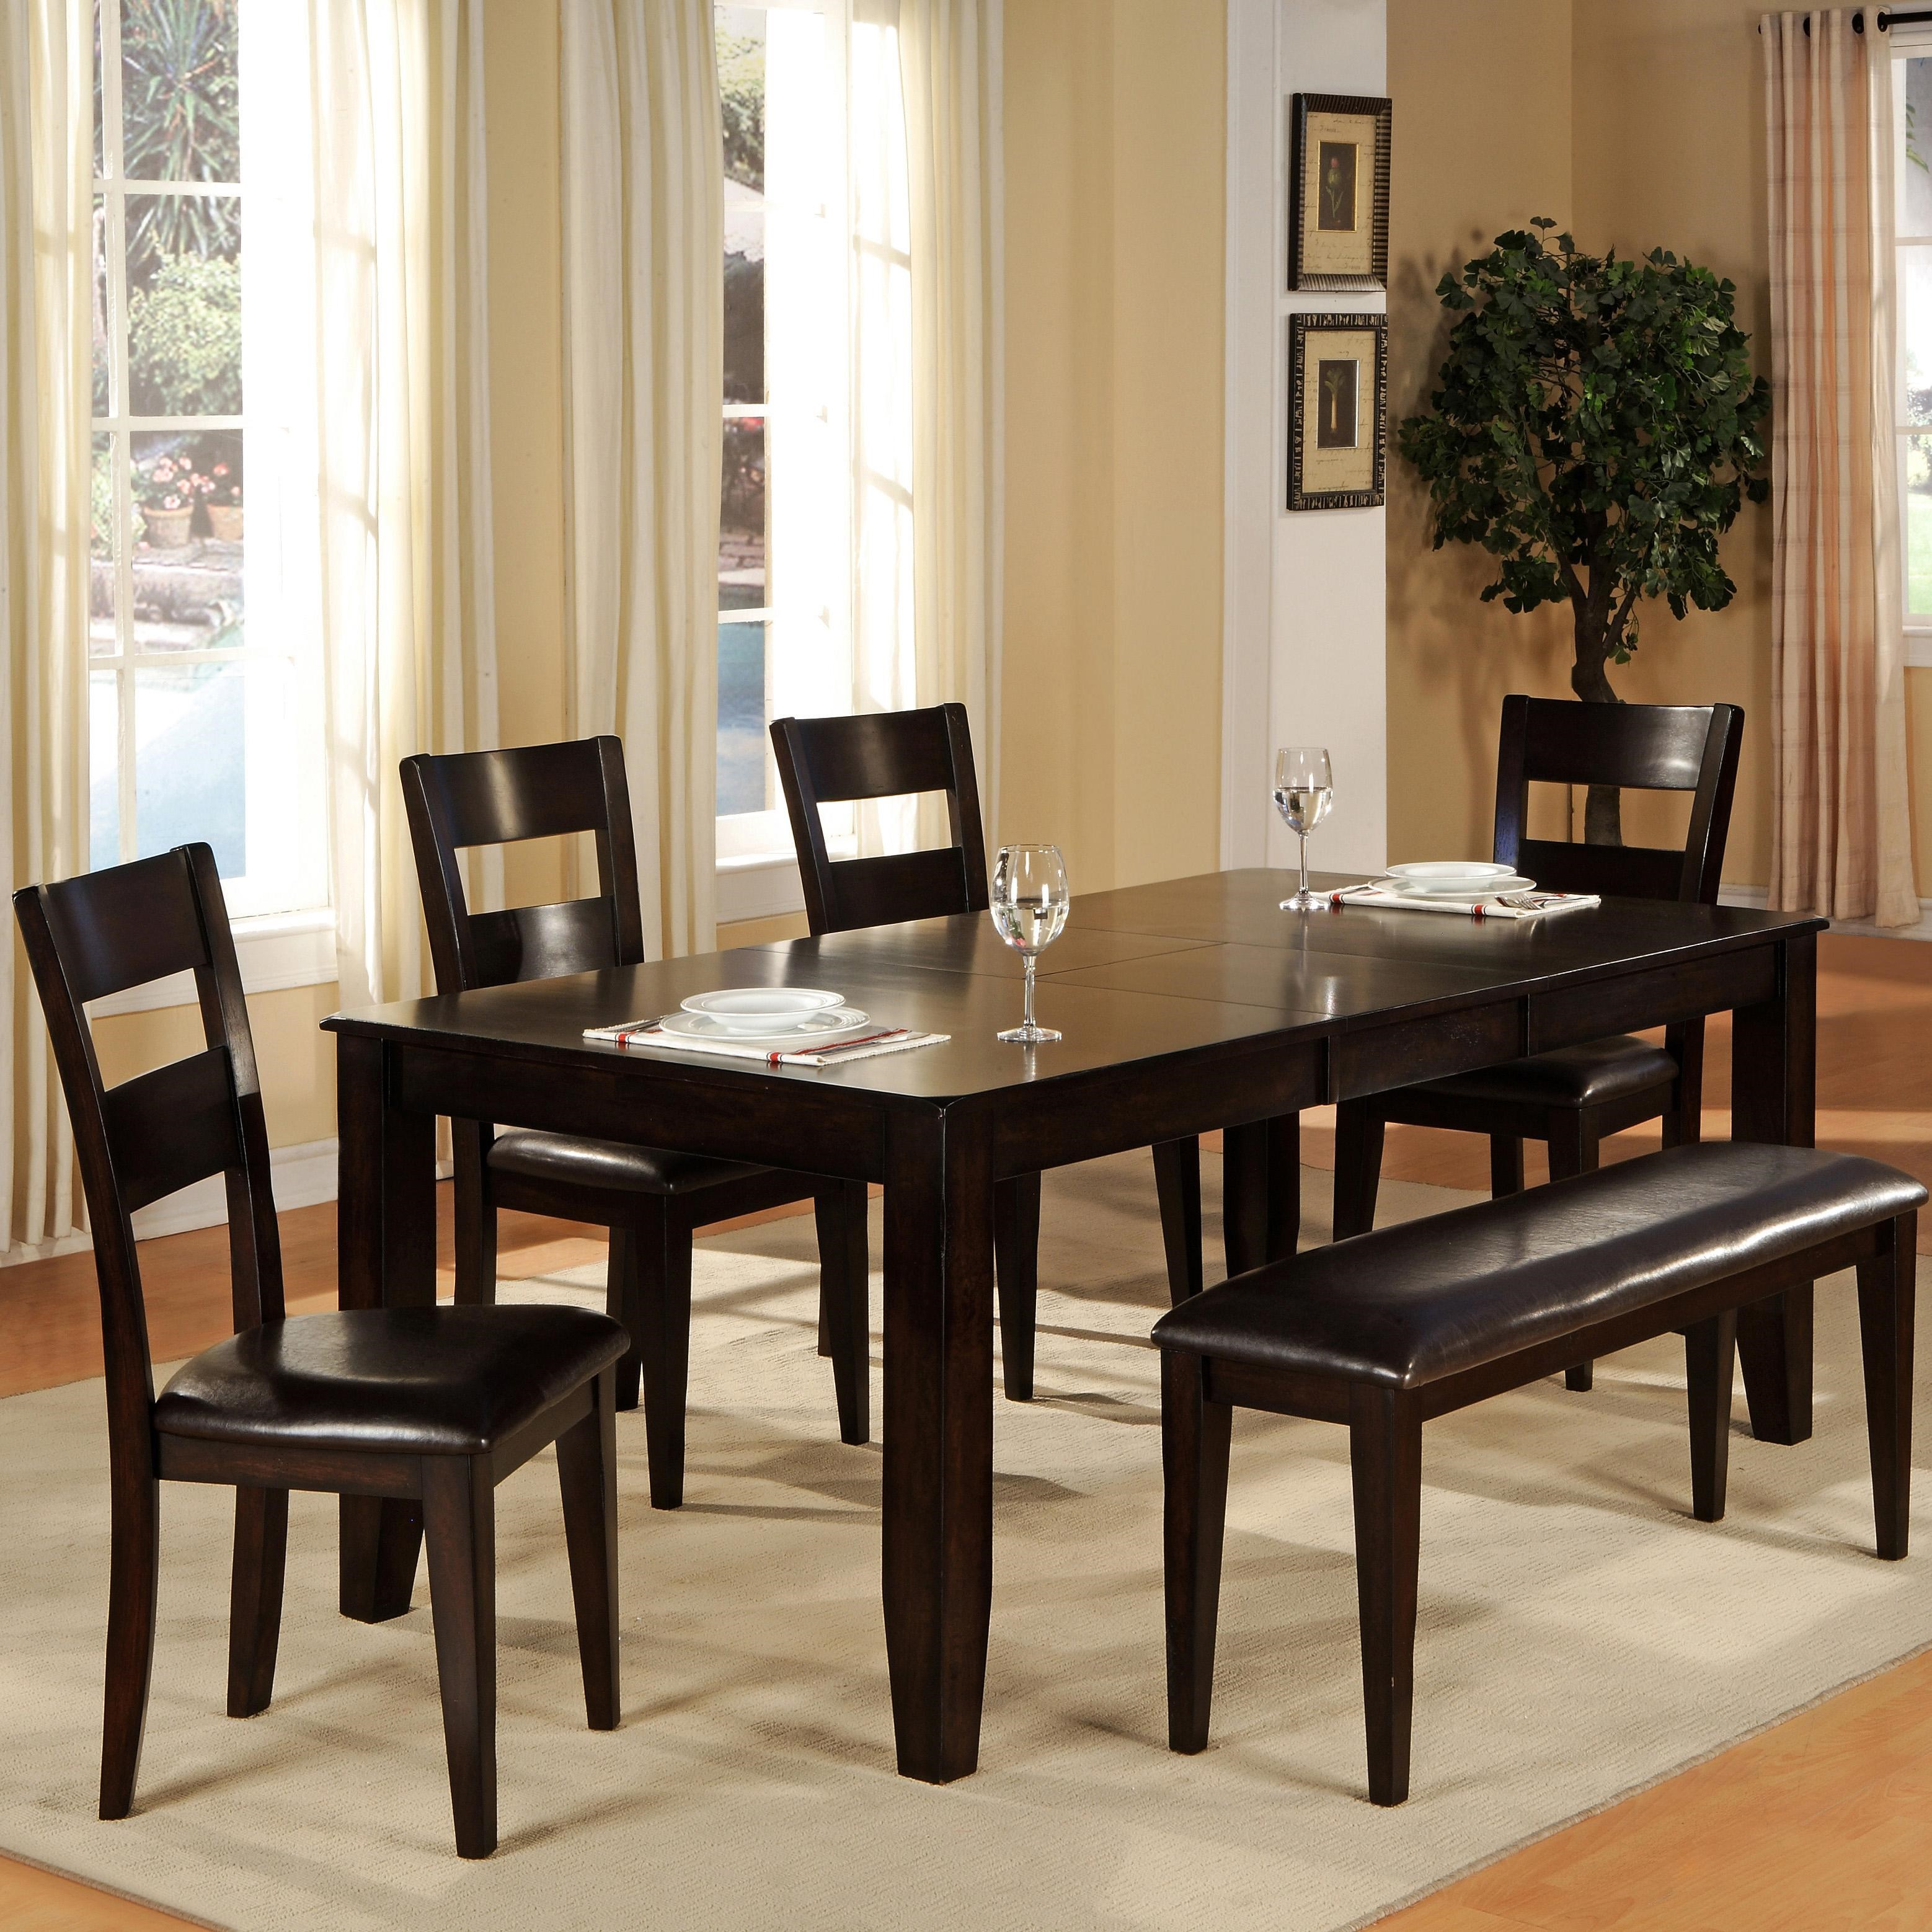 Holland House Willis Table + 4 Chairs + Bench